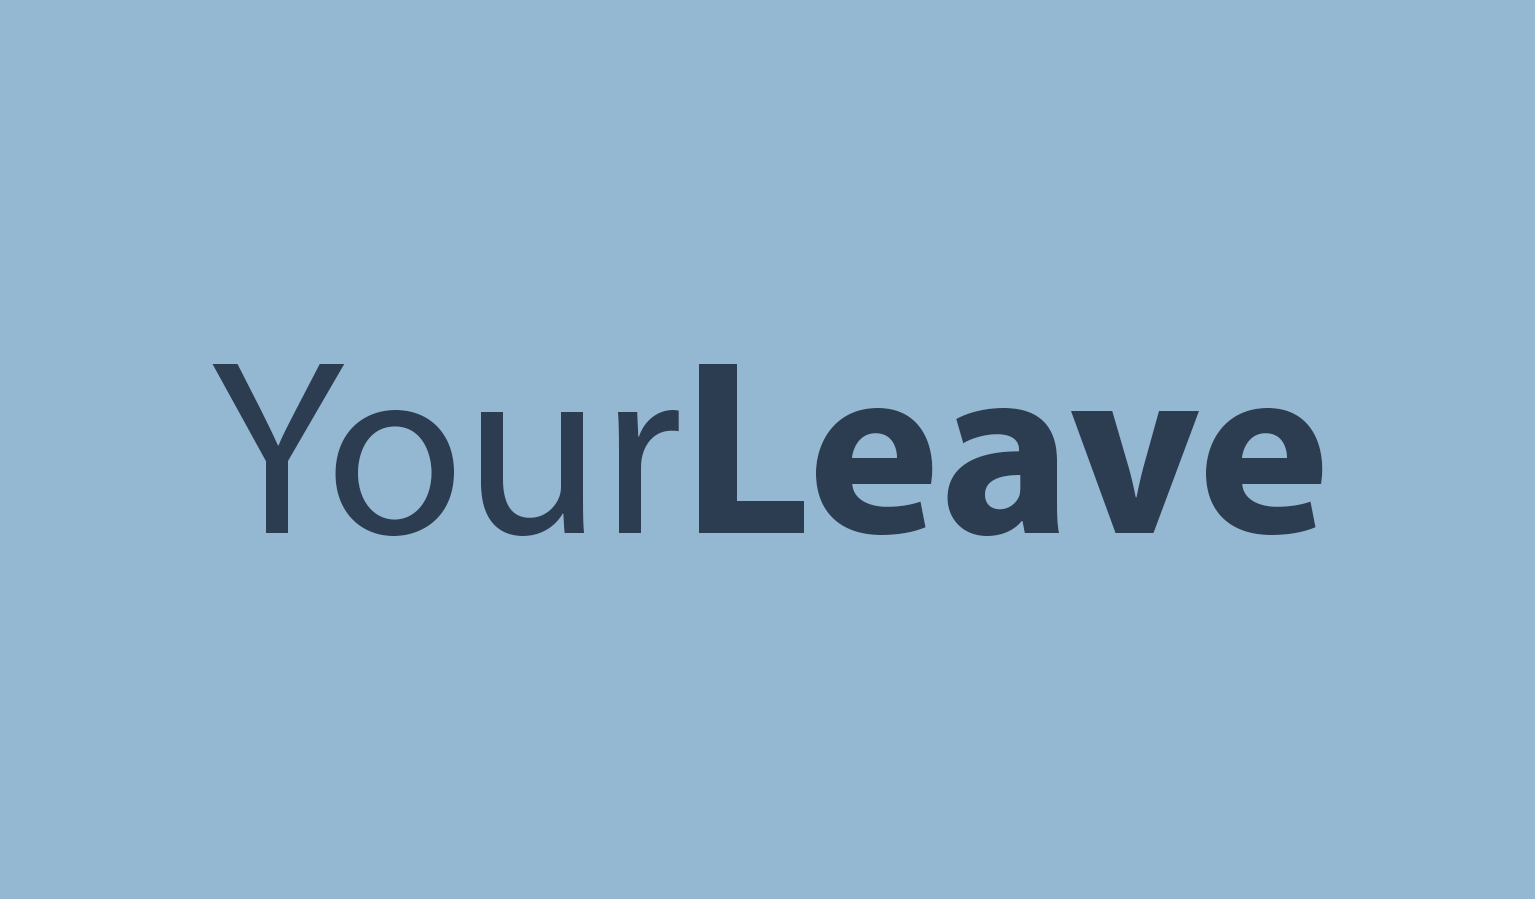 Image of the YourLeave logo